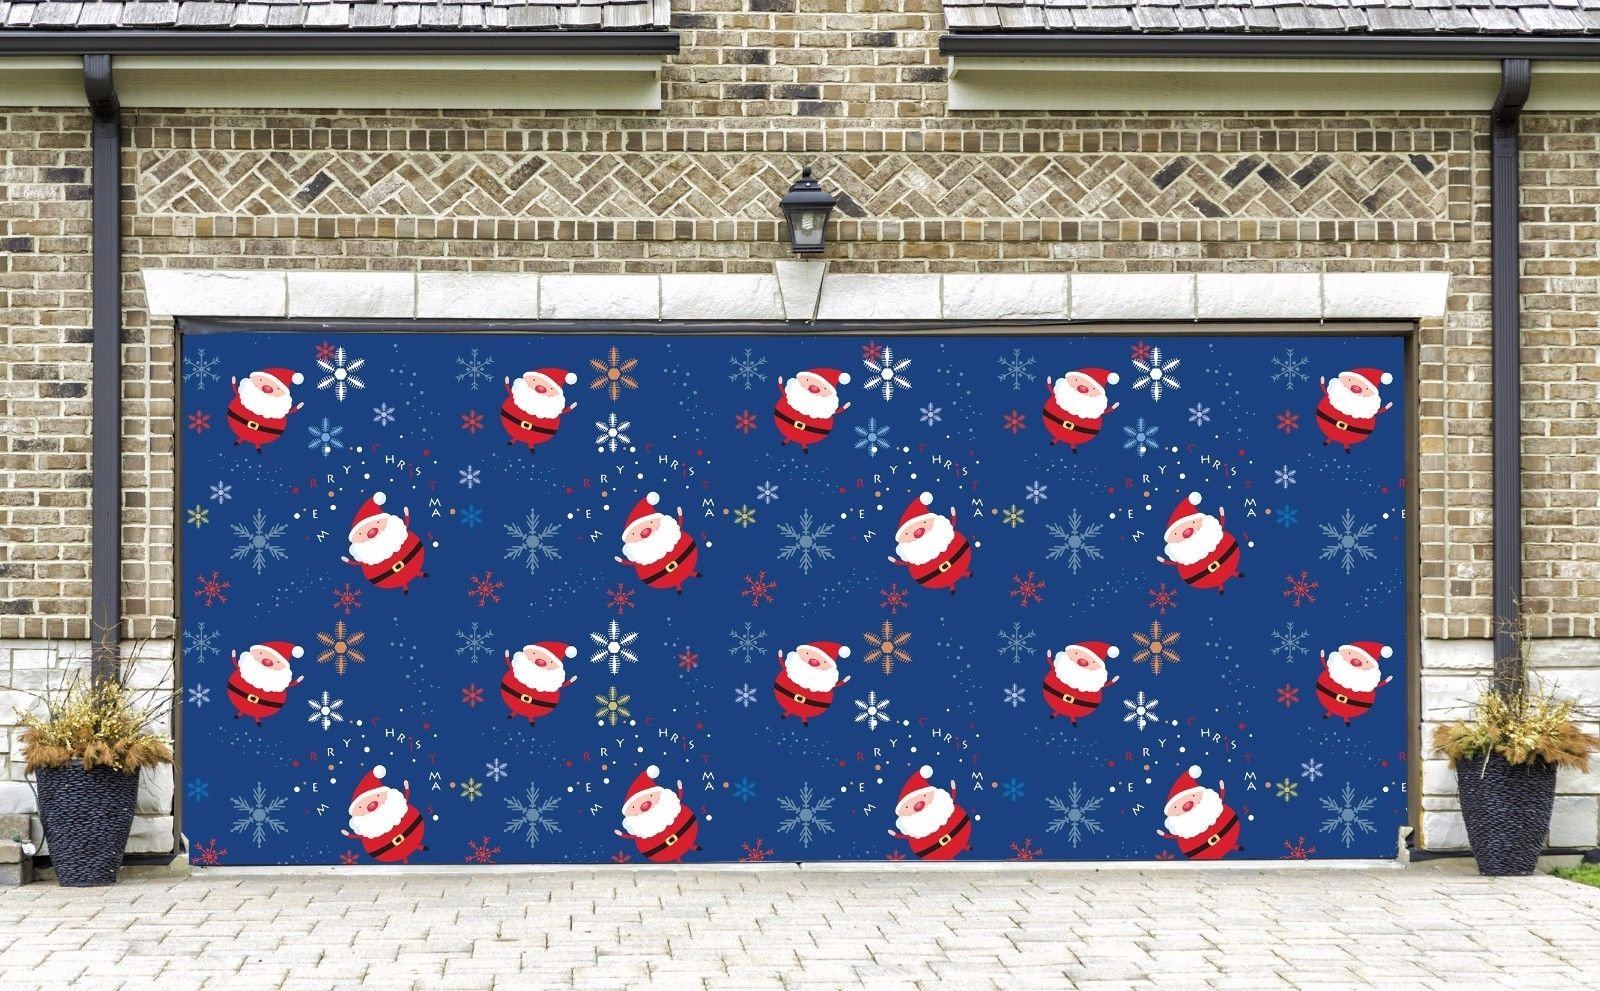 Christmas Santa Billboard for 2 Car Garage Door Outdoor Holiday Full Color 3D Print Garage Door Covers Banners Merry Christmas Decorations House Art Murals size 82x188 inches DAV38